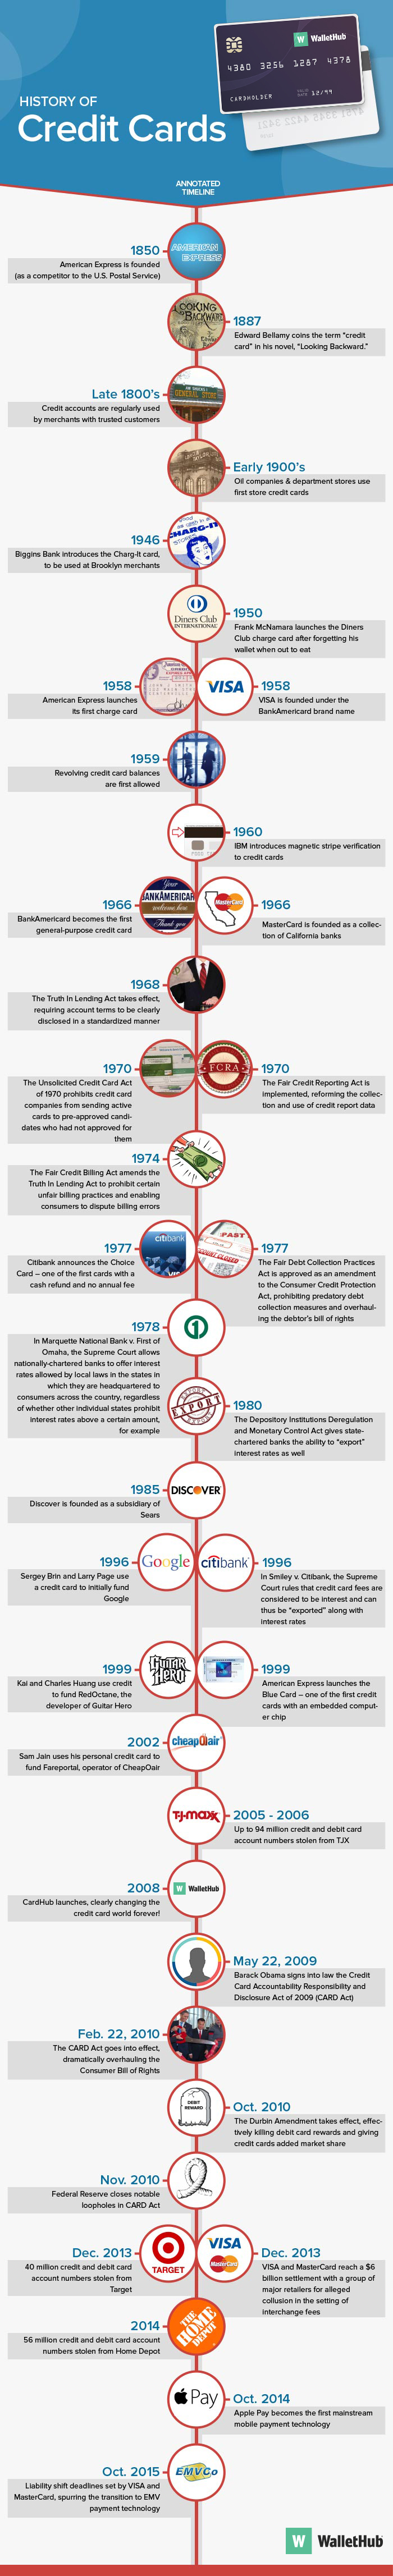 WH-Timeline-History of credit cards